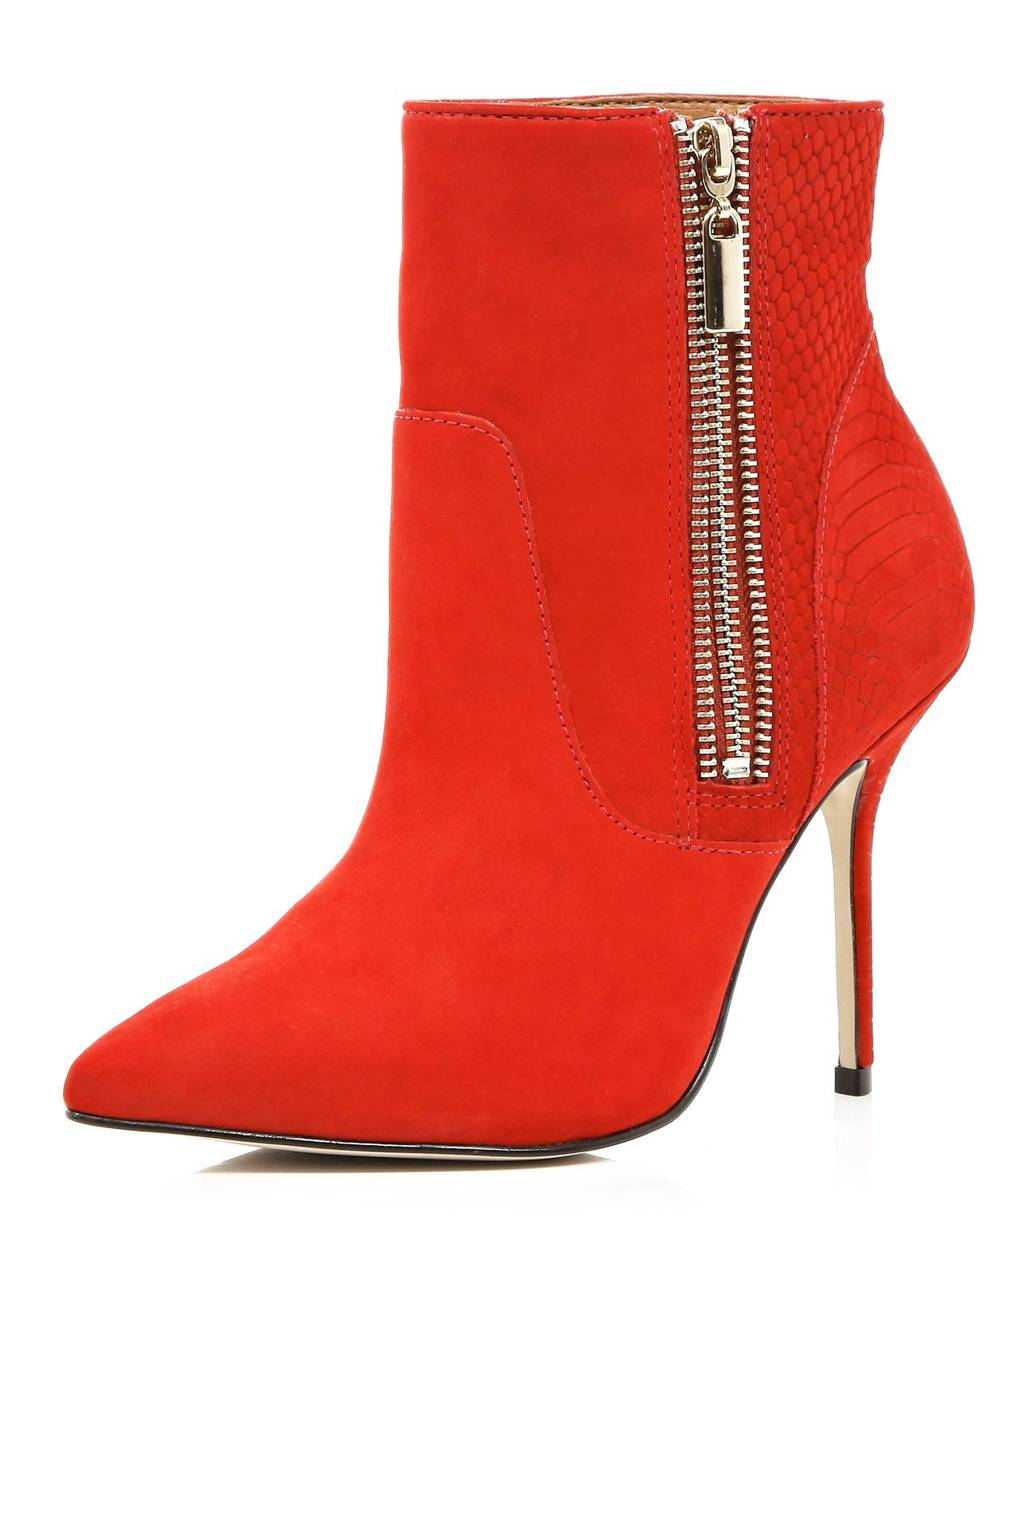 Top 100 Autumn Winter Boots Shopping Glamour Uk High Heels Suede